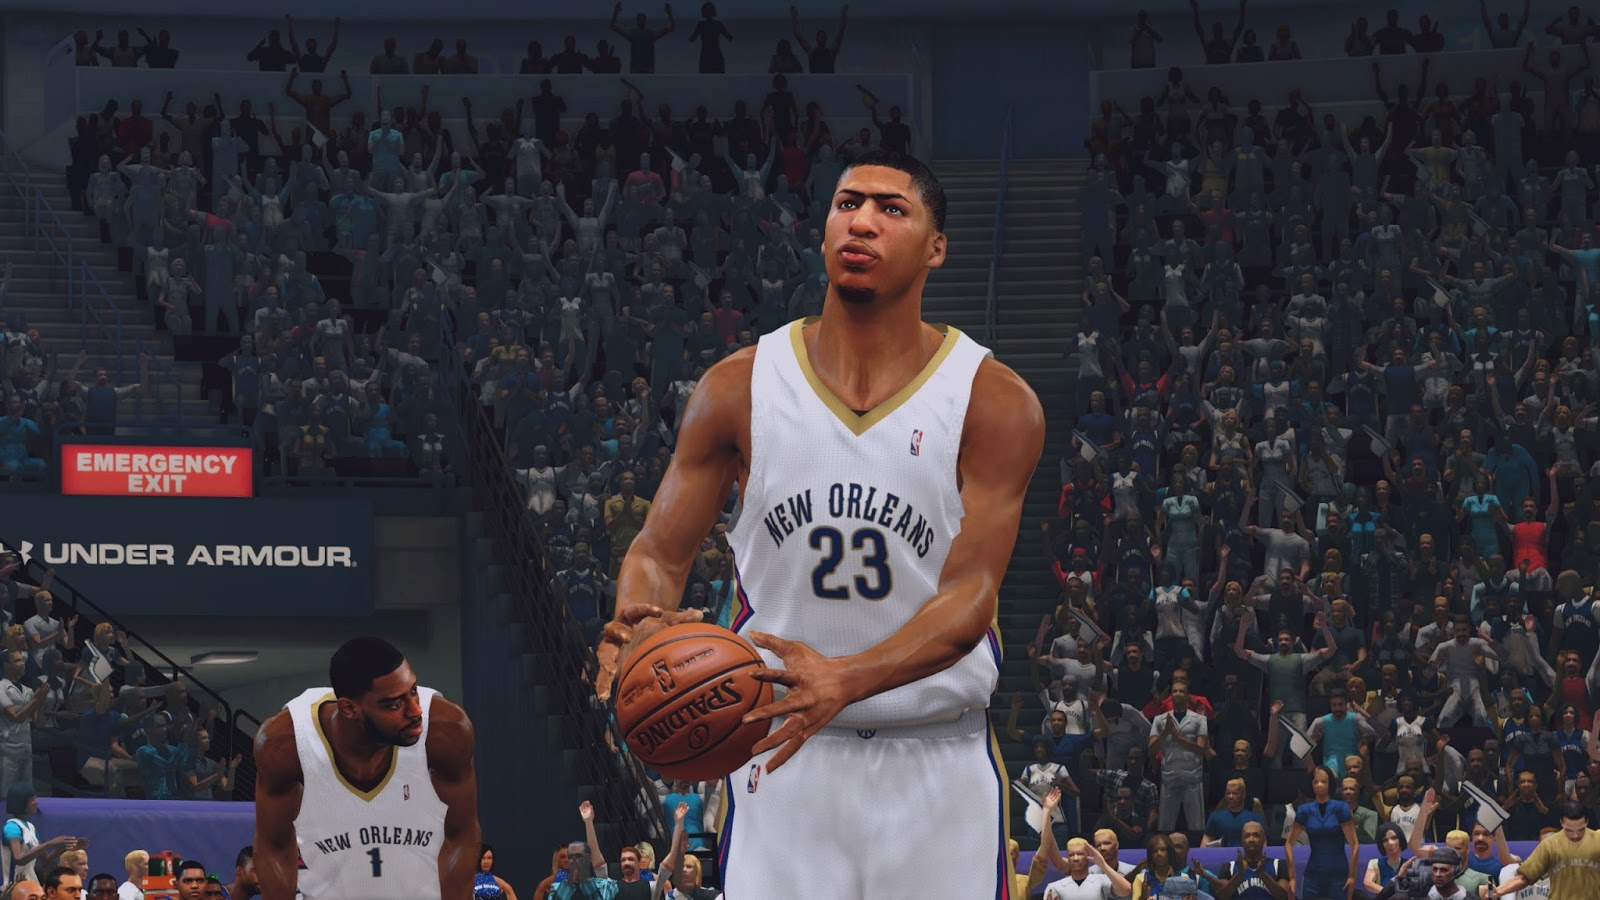 free nba 2k14 for pc